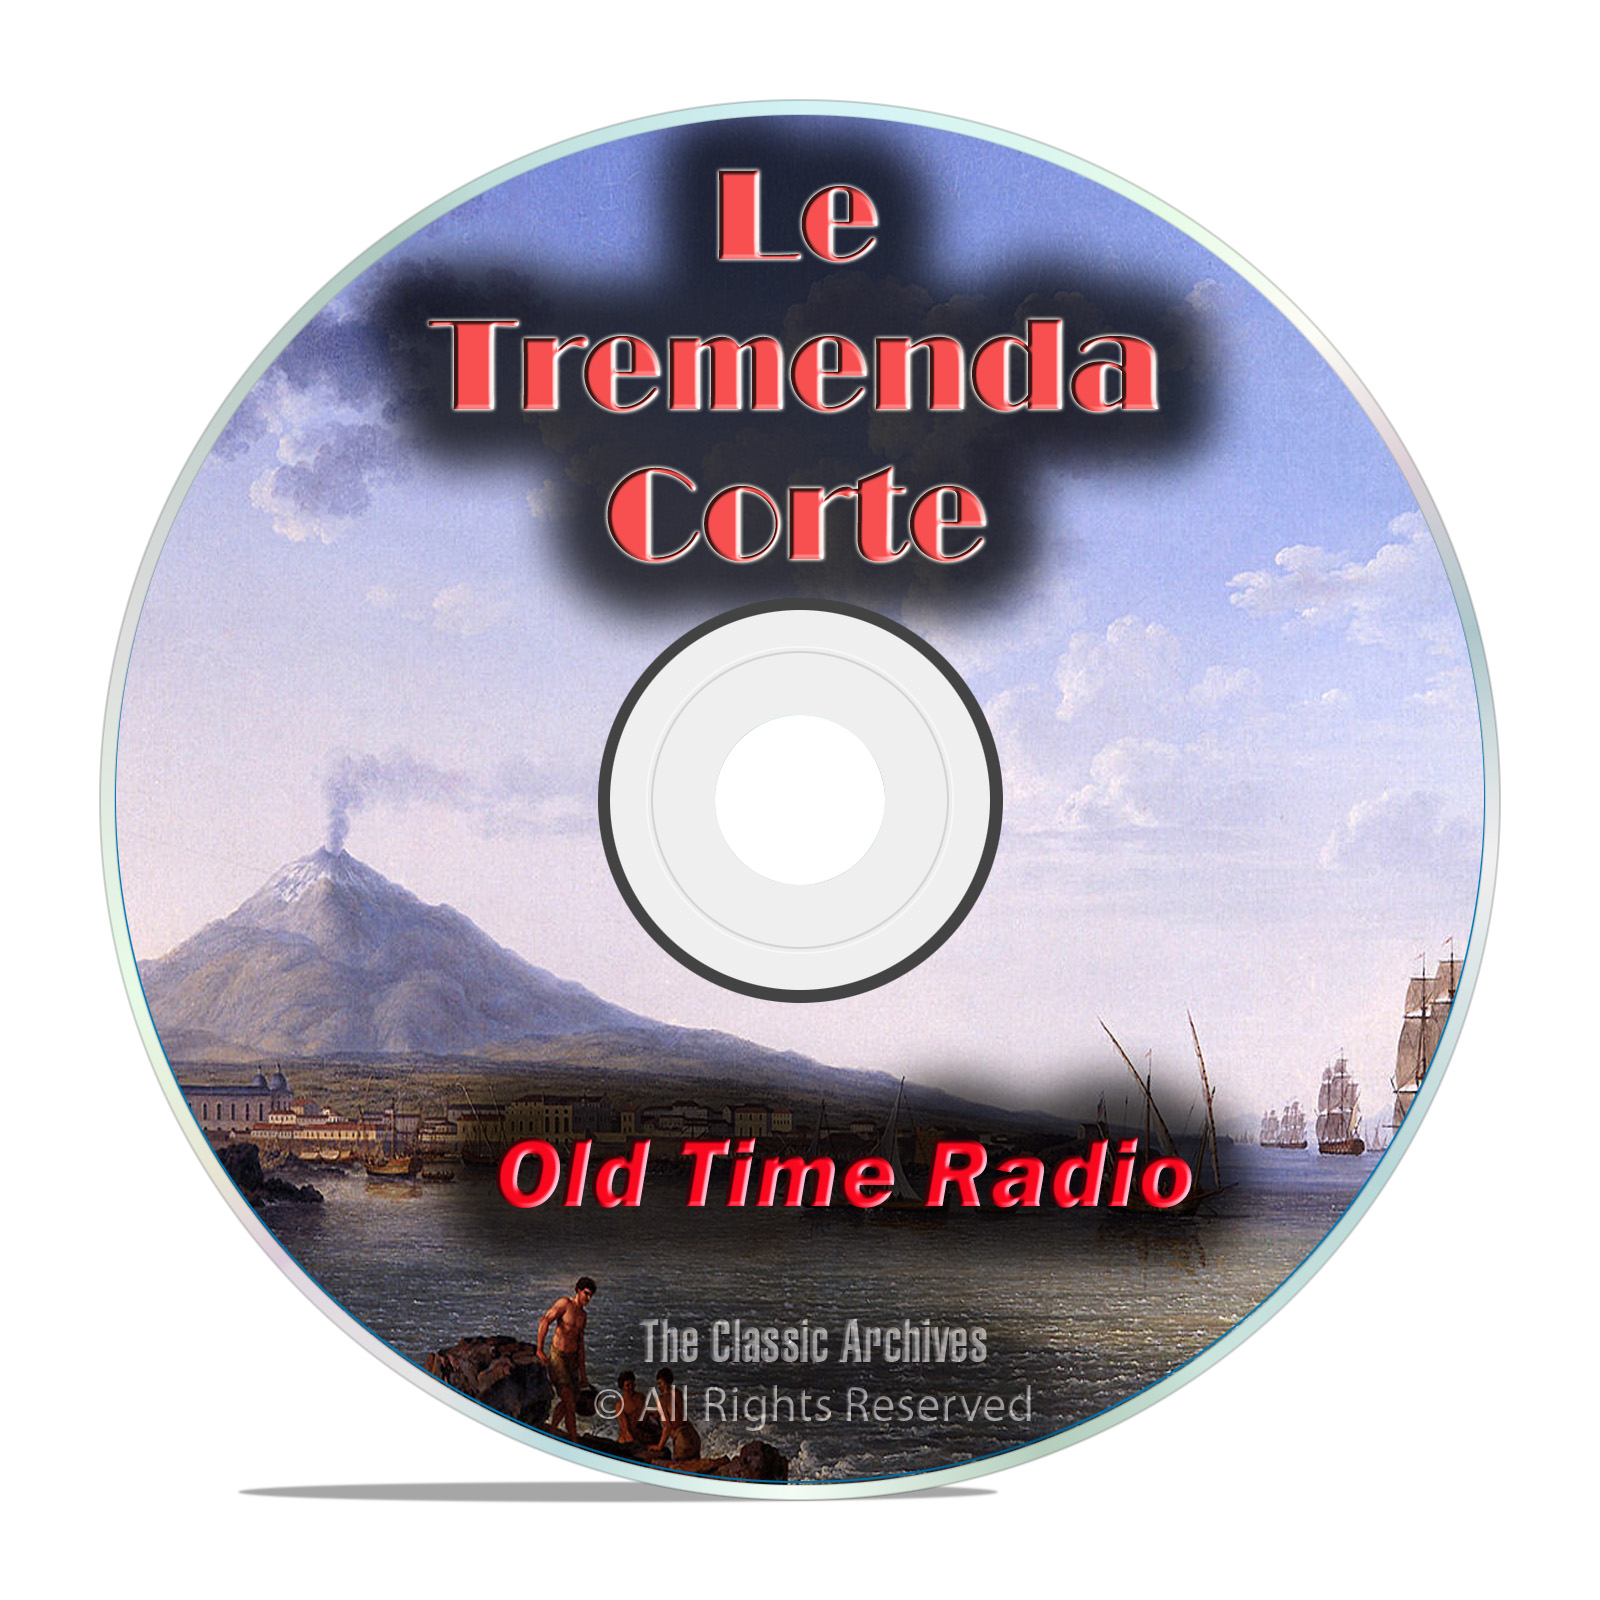 La Tremende Corte, 260 Spanish Old Time Radio Shows, Cuban mp3 DVD